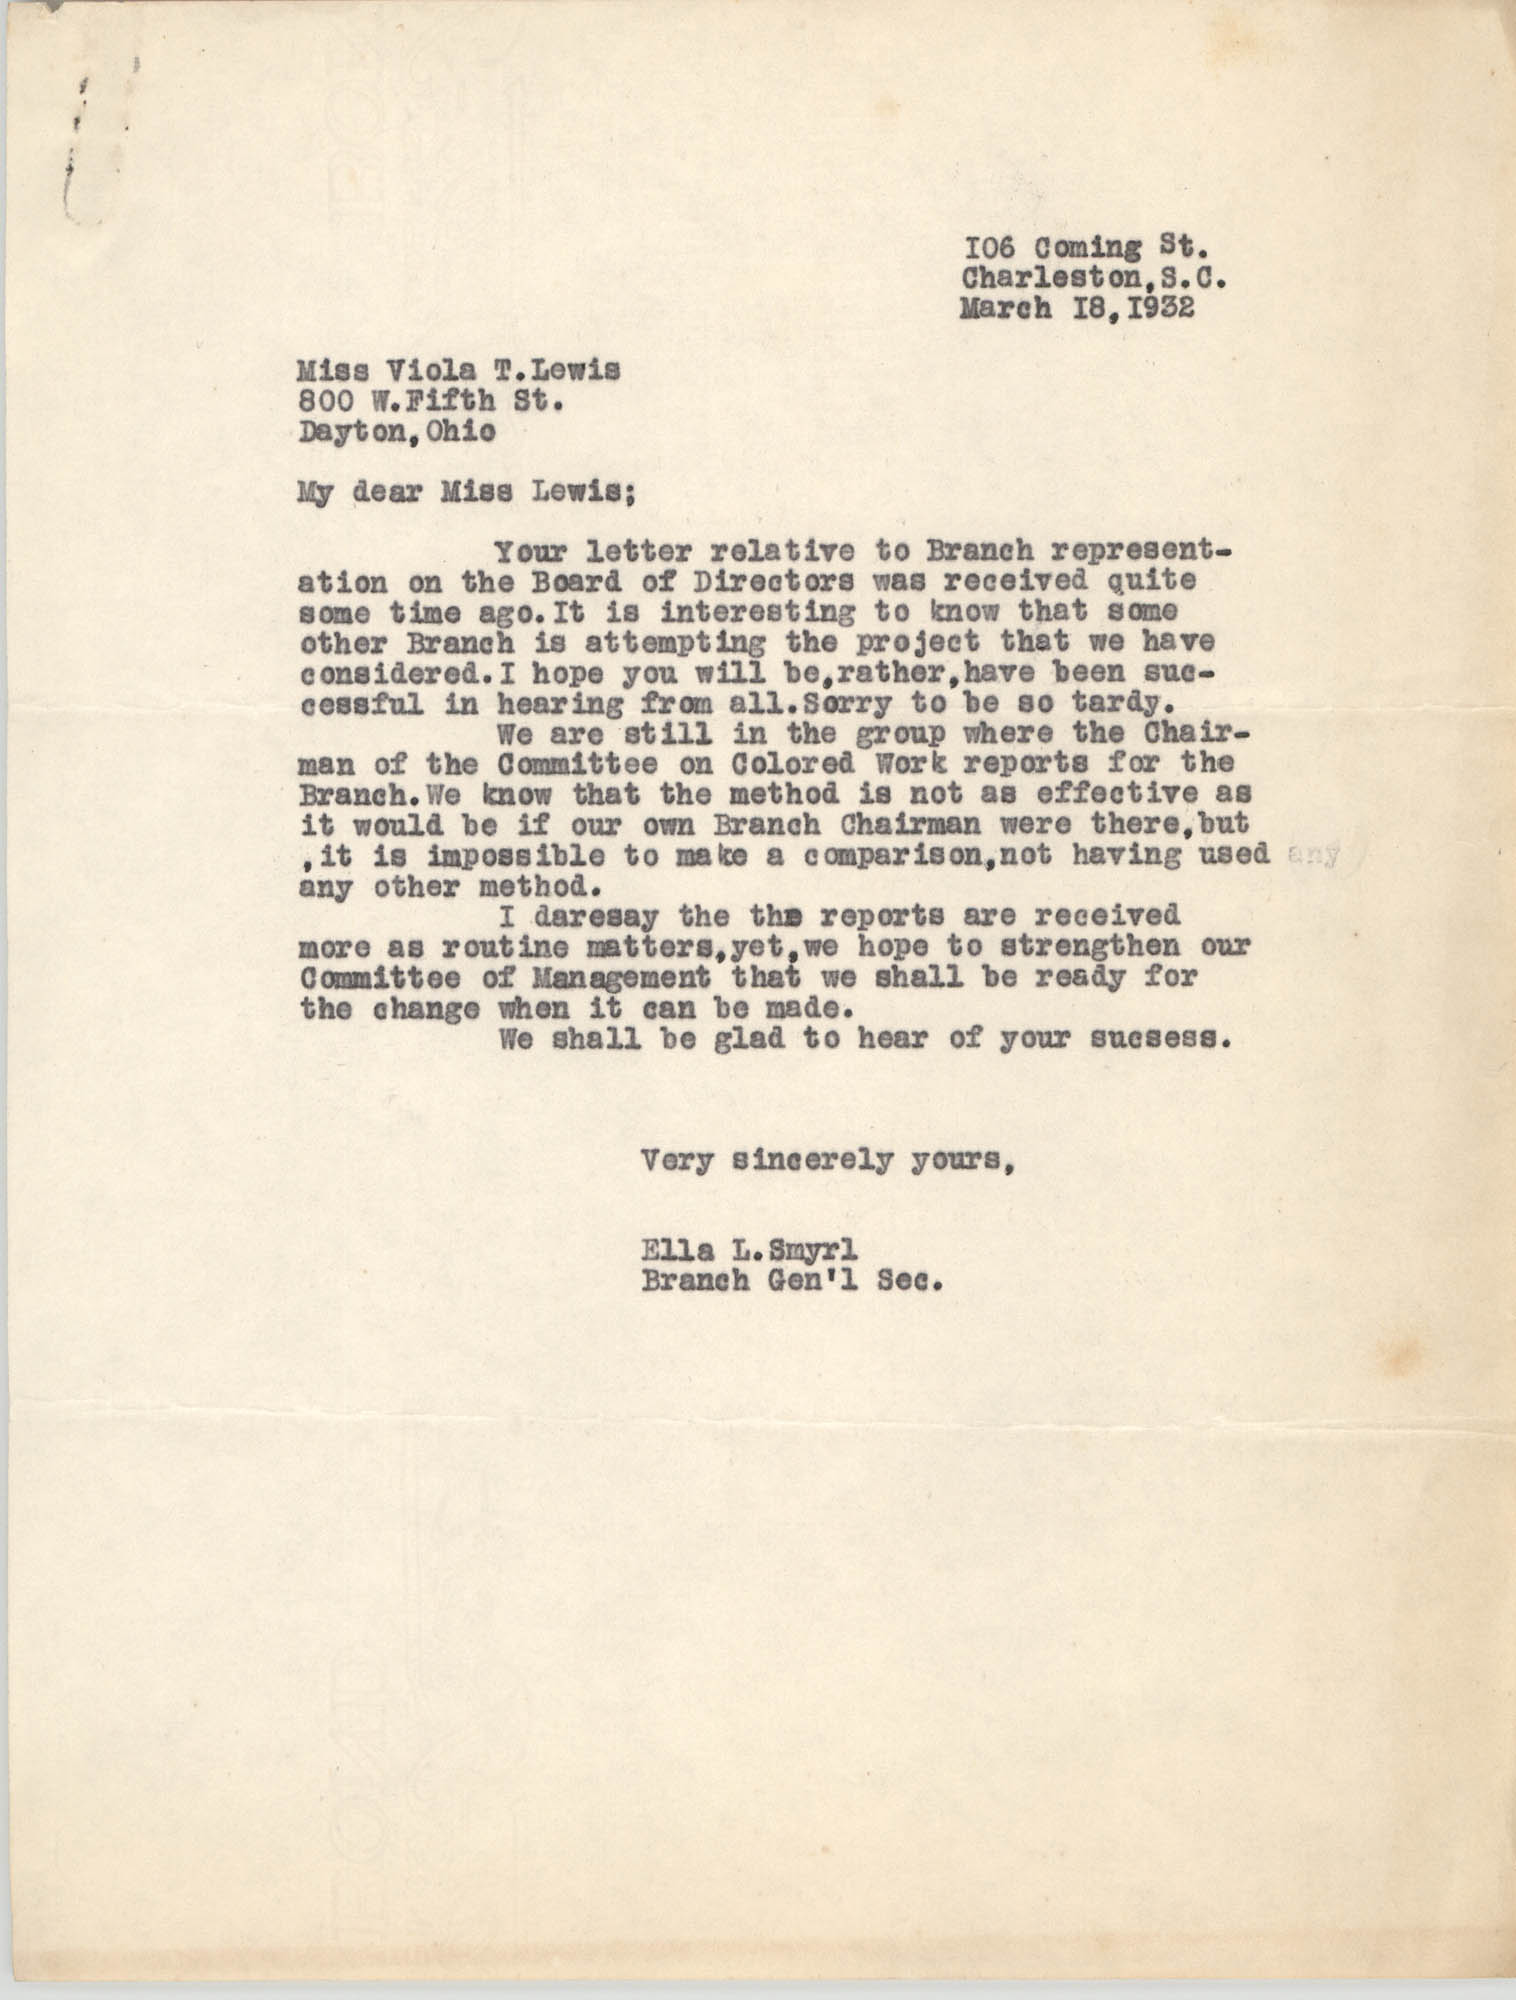 Letter from Ella L. Smyrl to Viola T. Lewis, March 18, 1932